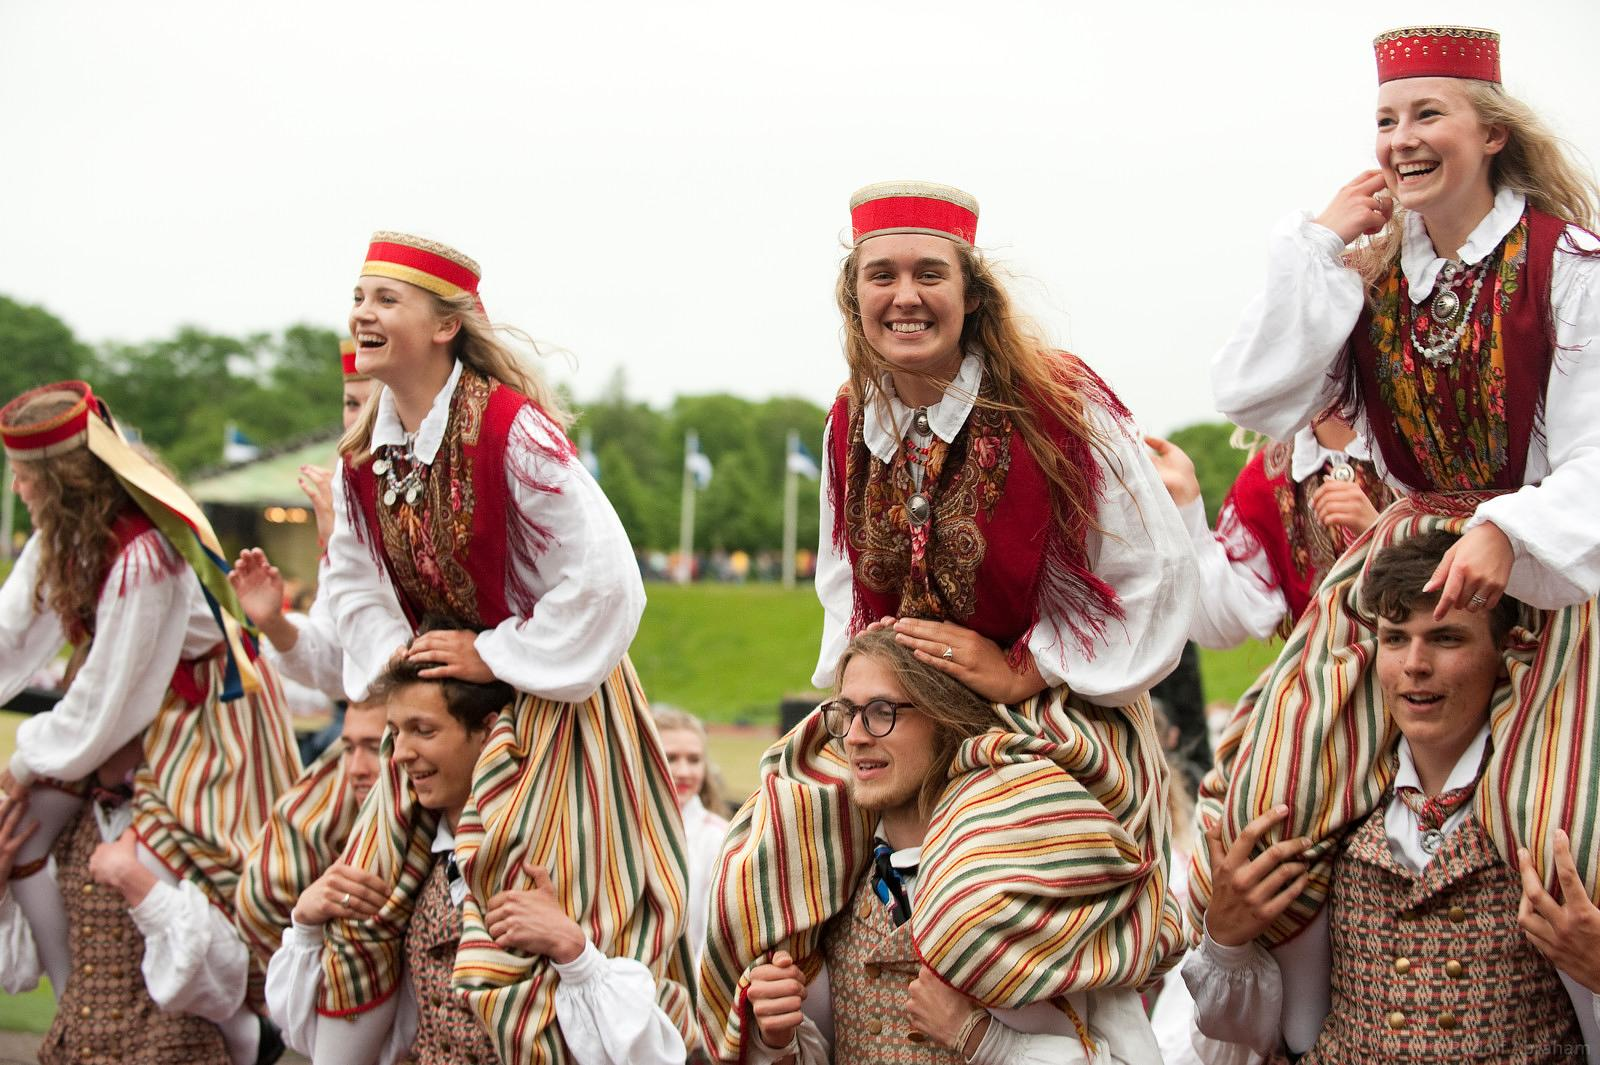 Youth Song and Dance Celebration, Tallinn, Estonia